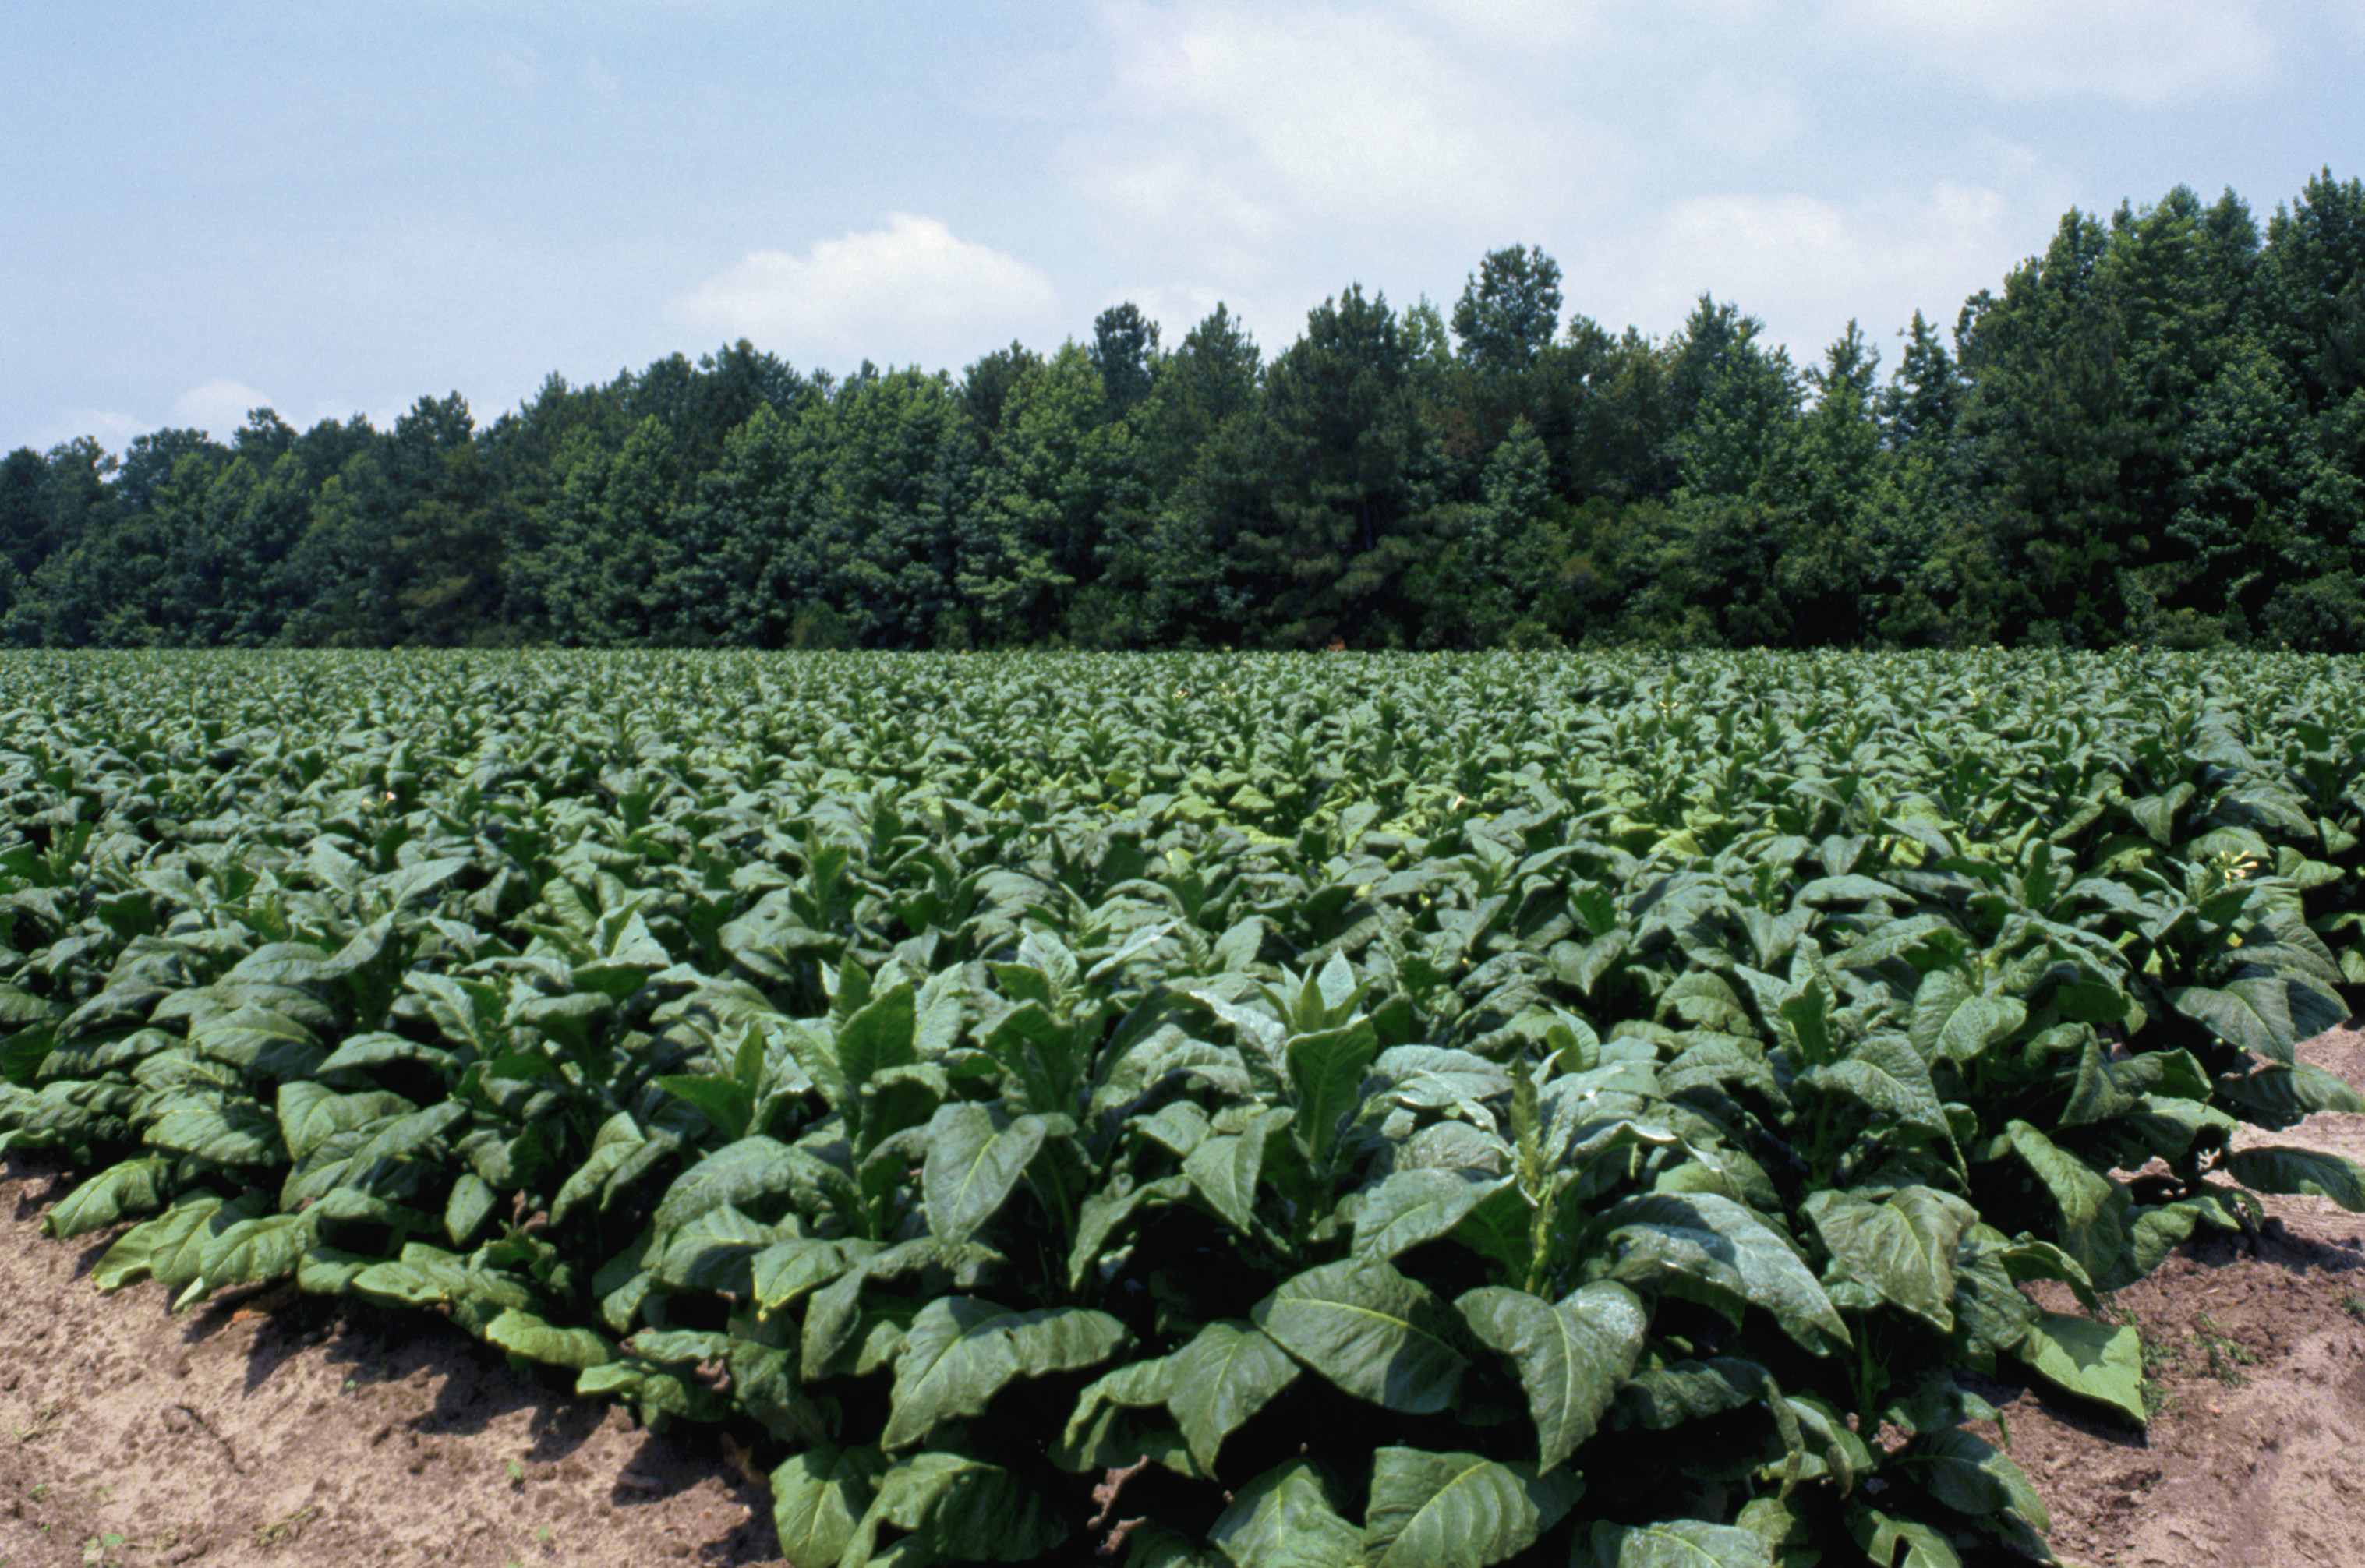 field-of-tobacco-plants - South Carolina Pictures - South ...